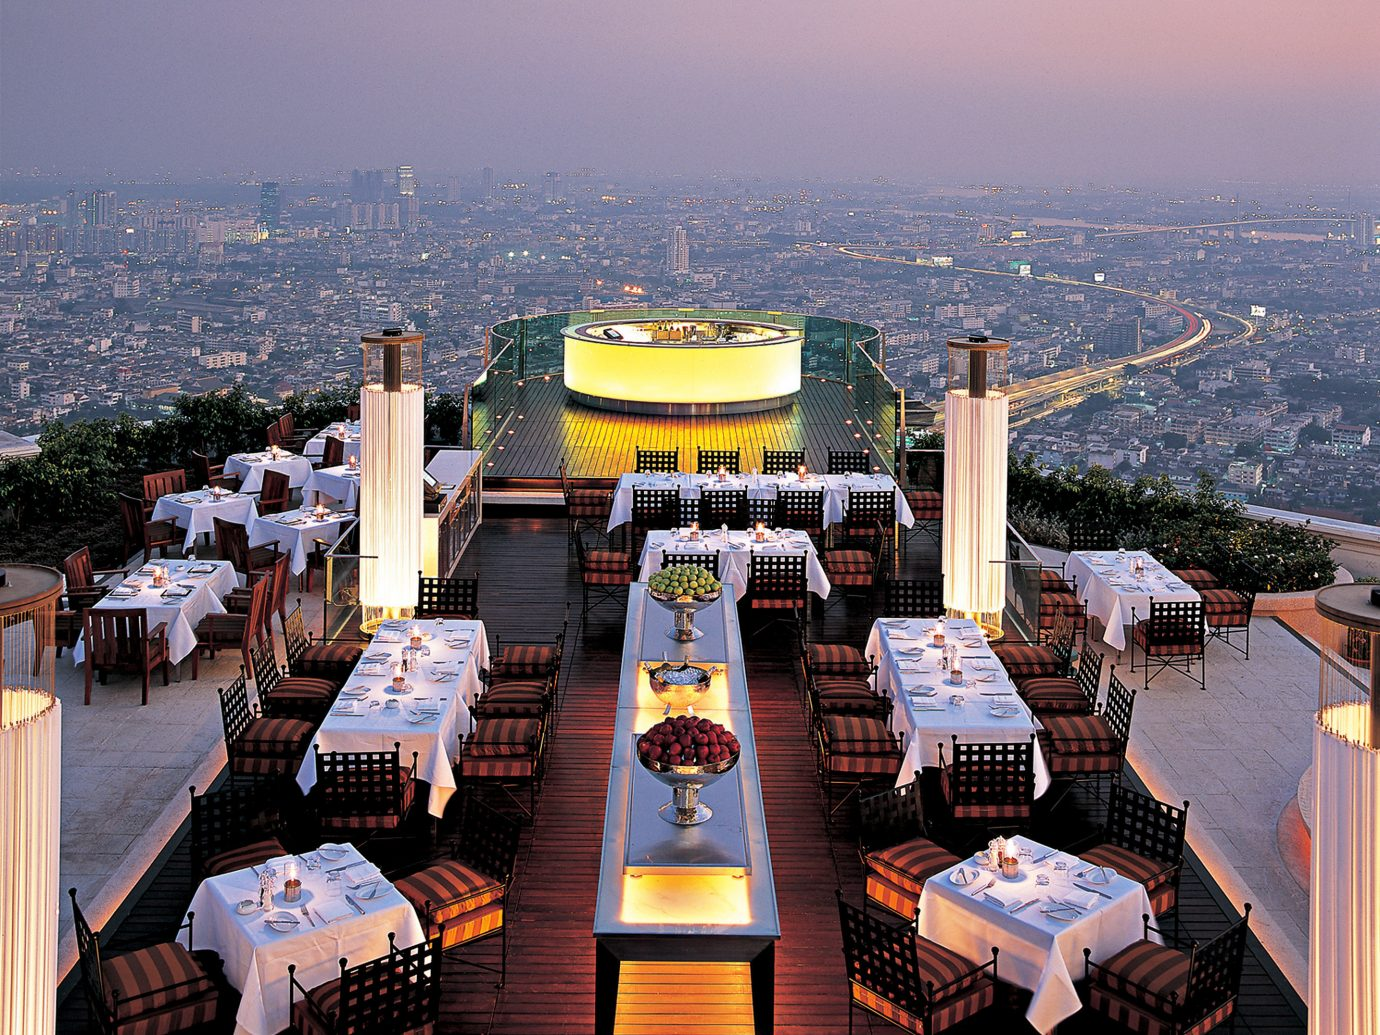 Bar Business City Dining Drink Eat Food + Drink Hotels Lounge Nightlife Party Rooftop Scenic views Trip Ideas sky mountain outdoor sport venue overlooking stadium cityscape vehicle Resort